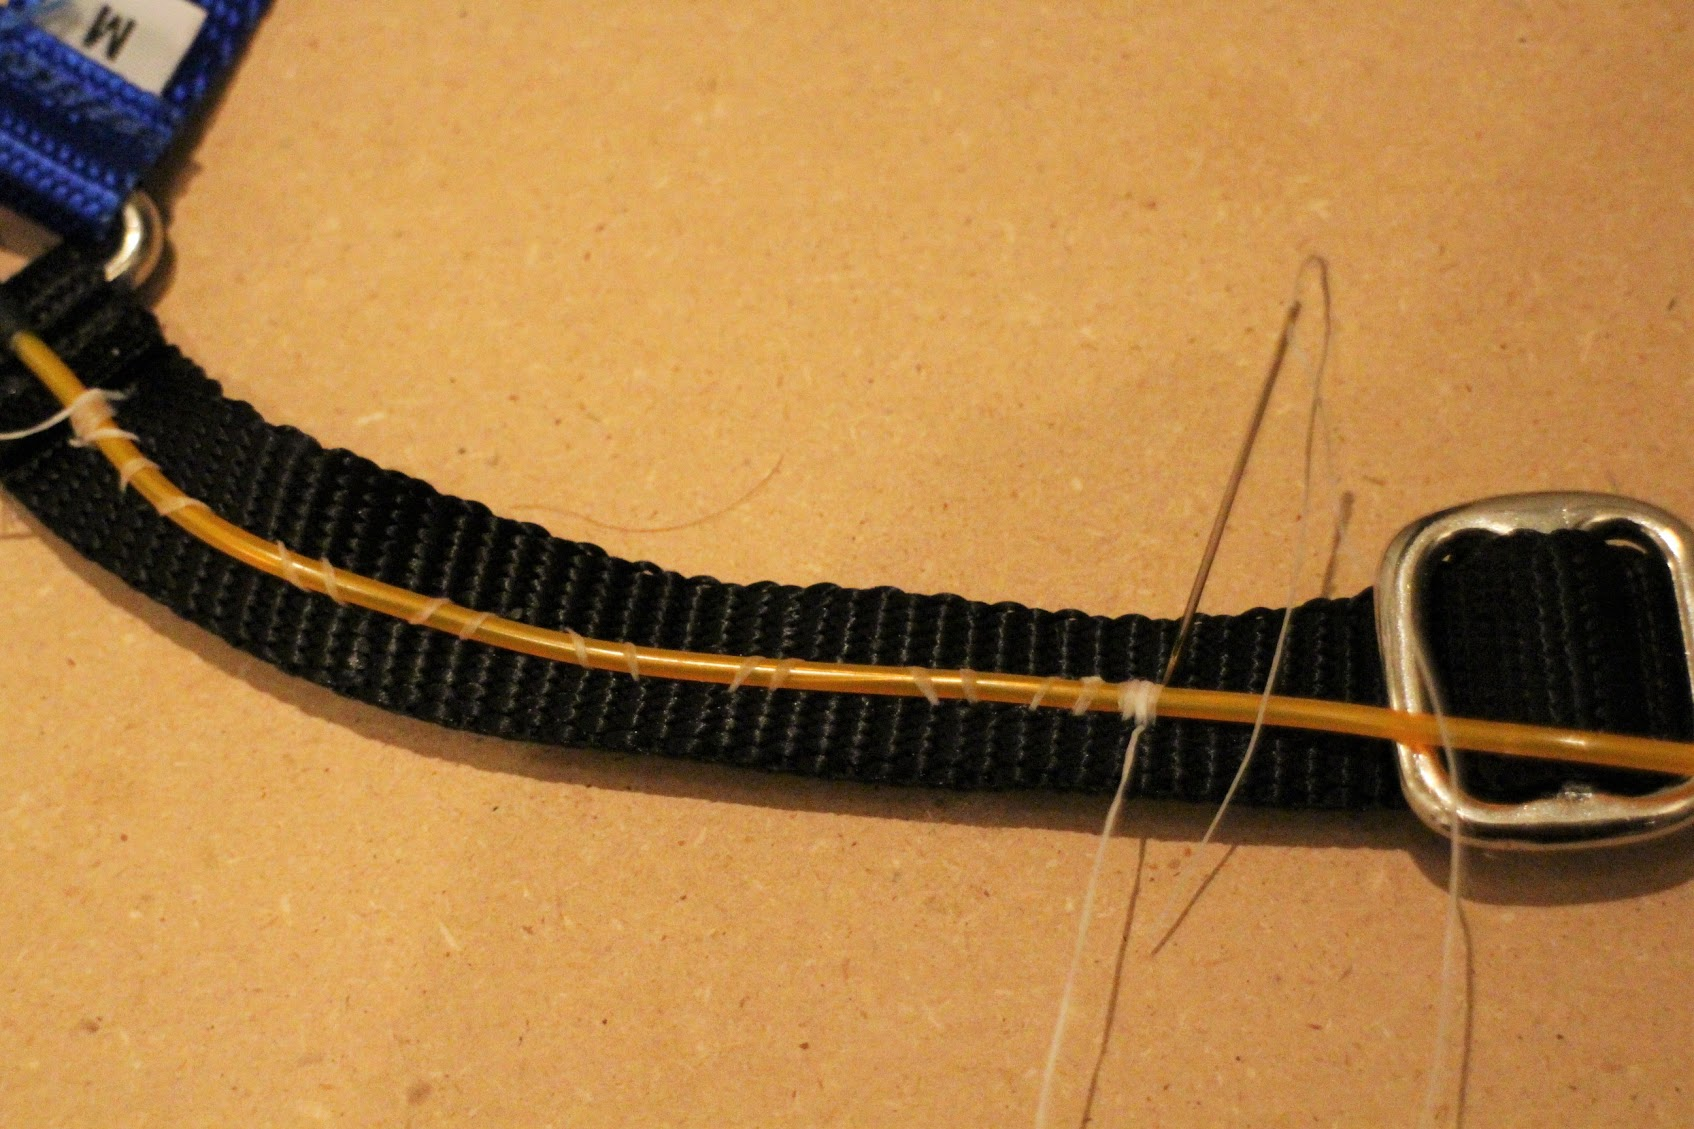 ELWire_Start el wire light up dog harness learn sparkfun com el camino wire harness at edmiracle.co